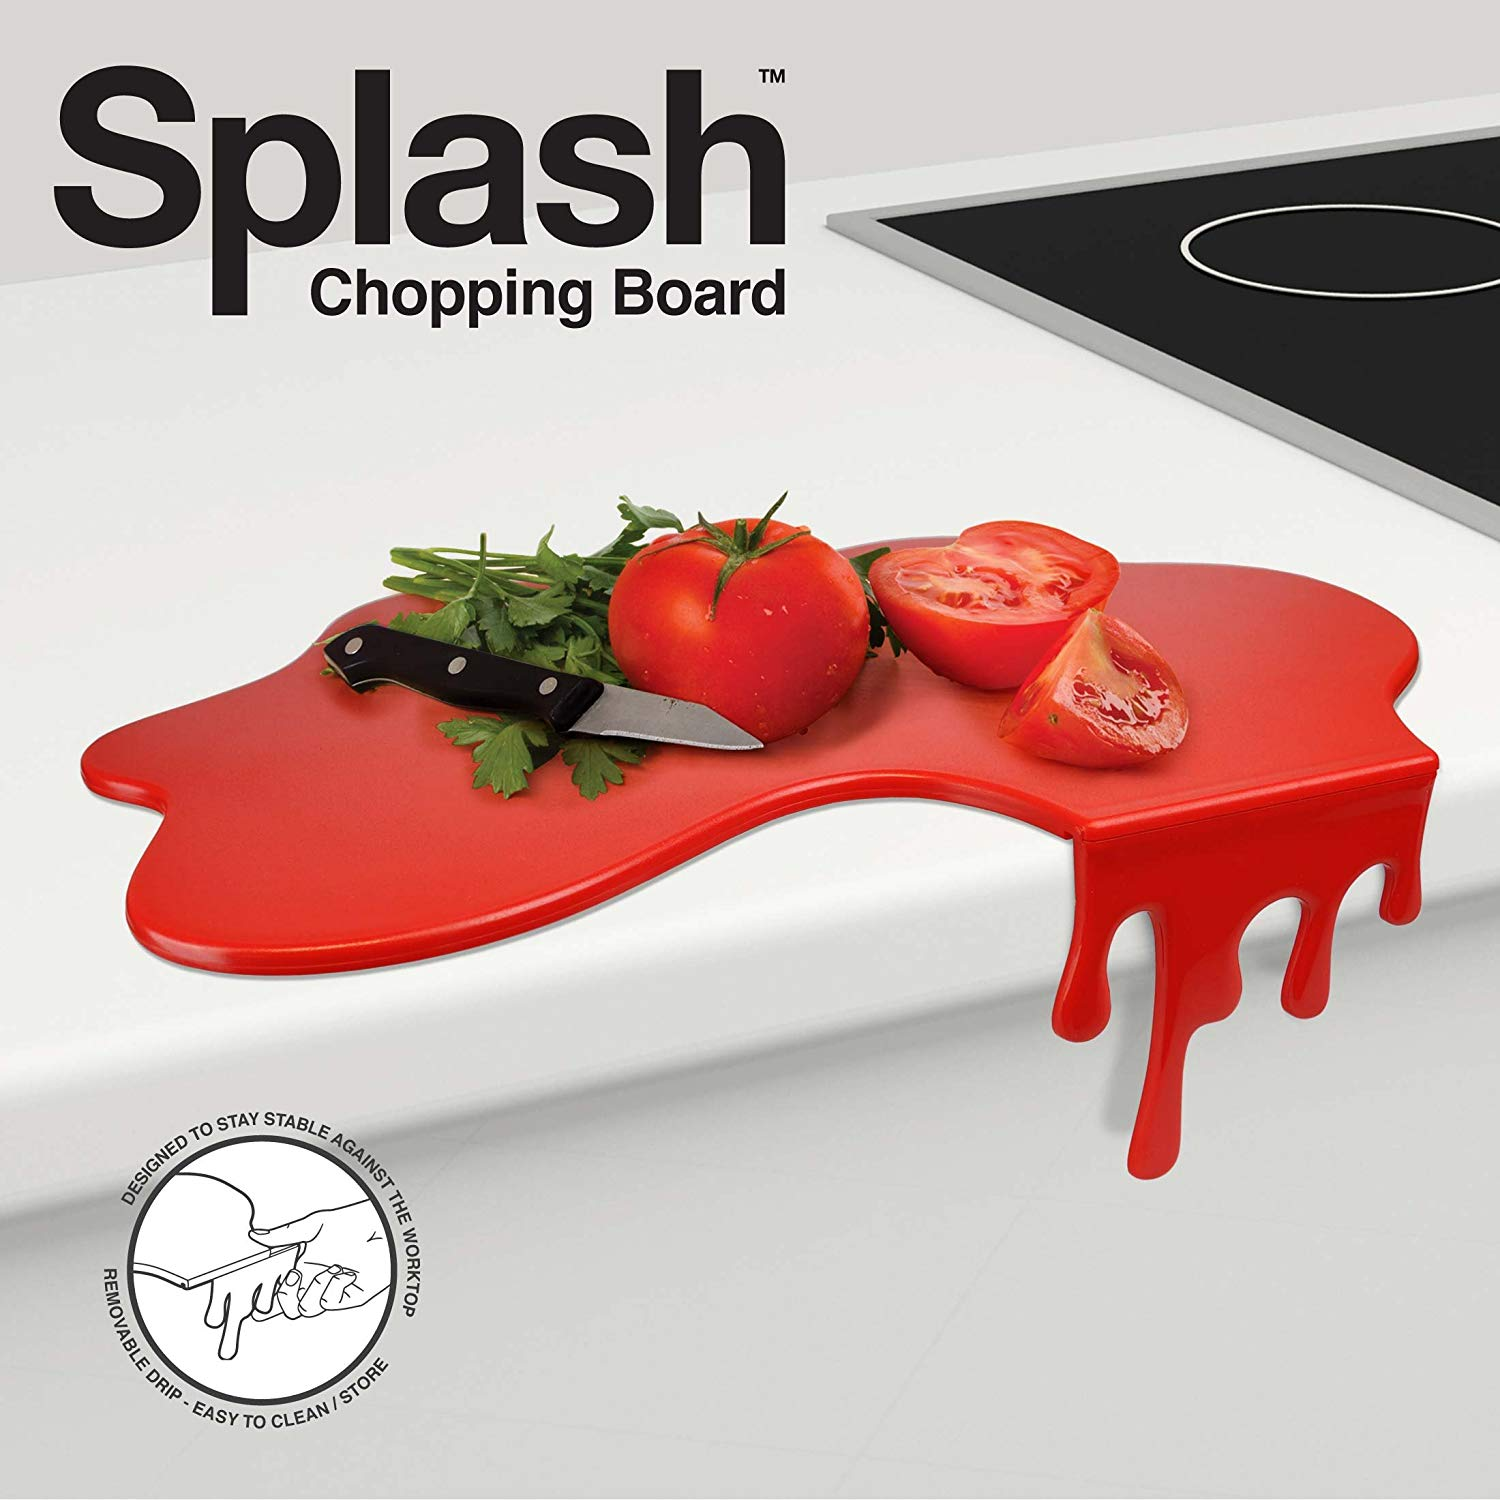 Tabla de cortar con diseño splash, color rojo